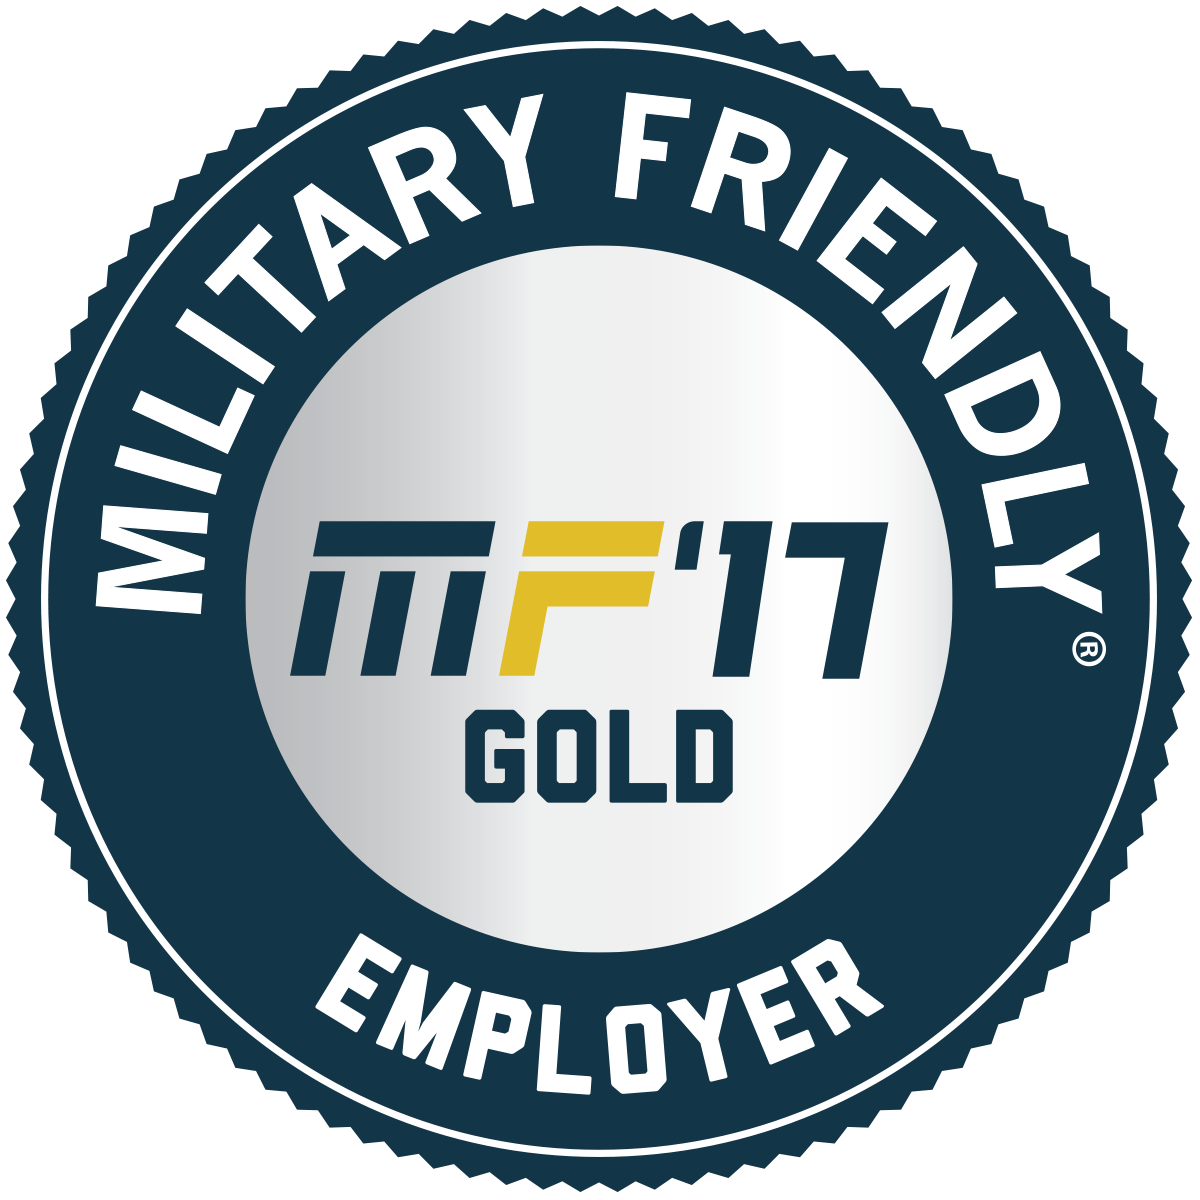 Security 88 Security Military Friendly Gold Employer